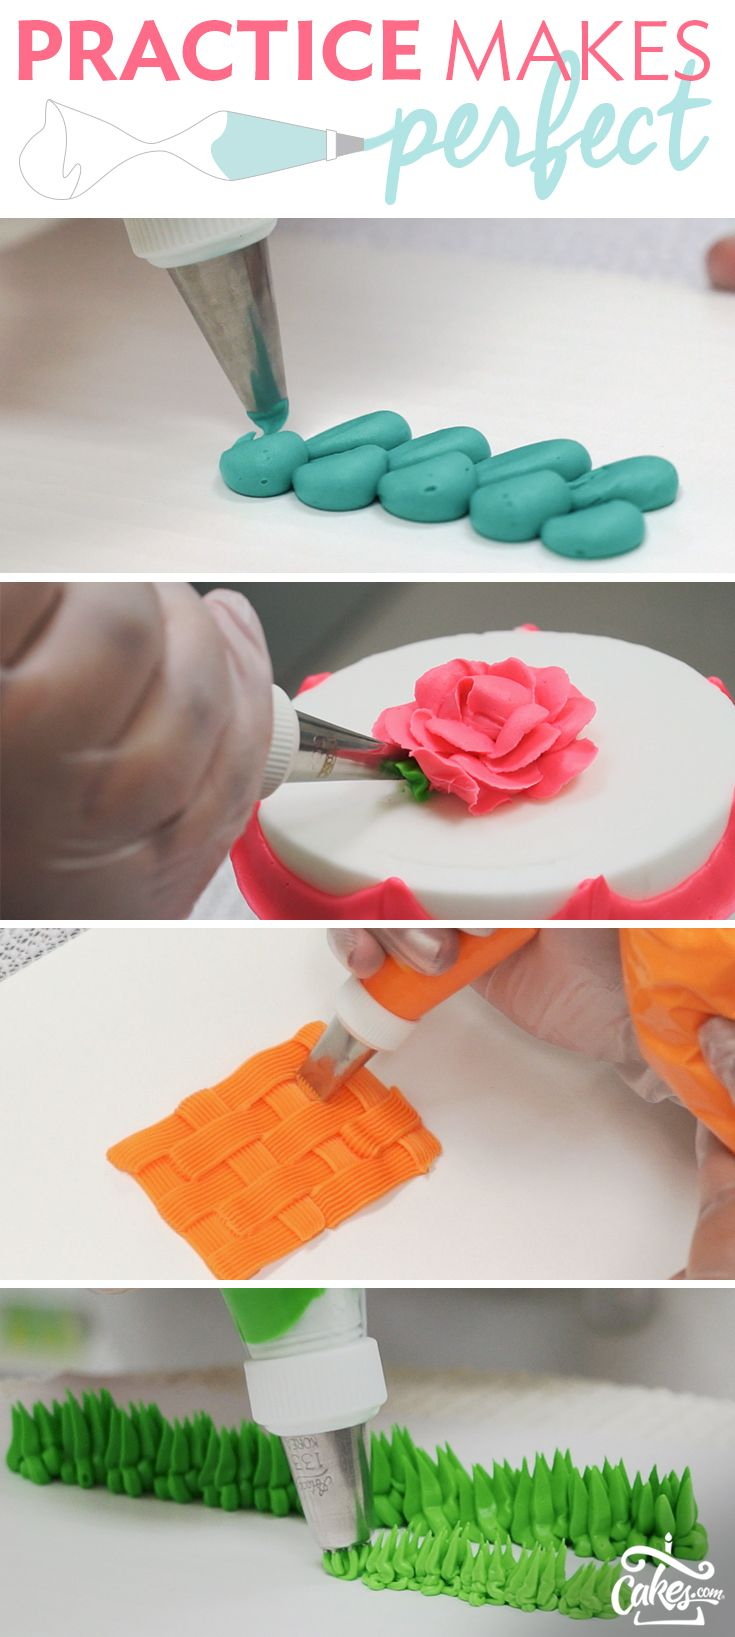 How To Make A Smoothe Cake